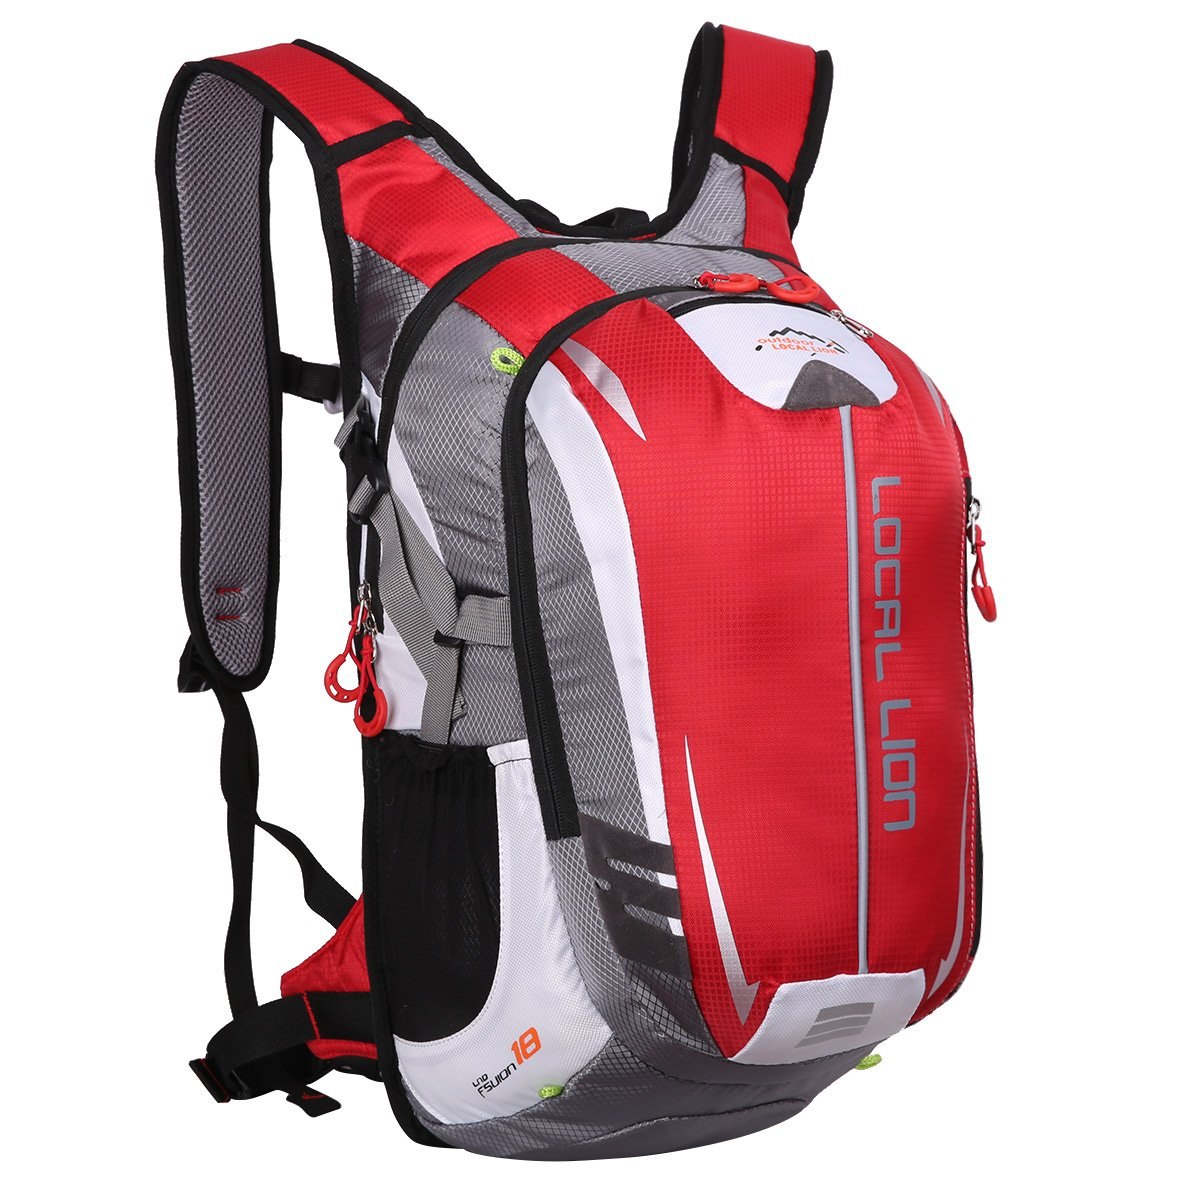 LOCALLION Cycling Backpack Riding Backpack Bike Rucksack Outdoor Sports Daypack for Running Hiking Camping Travelling Ultralight Men Women 18L BFB003321